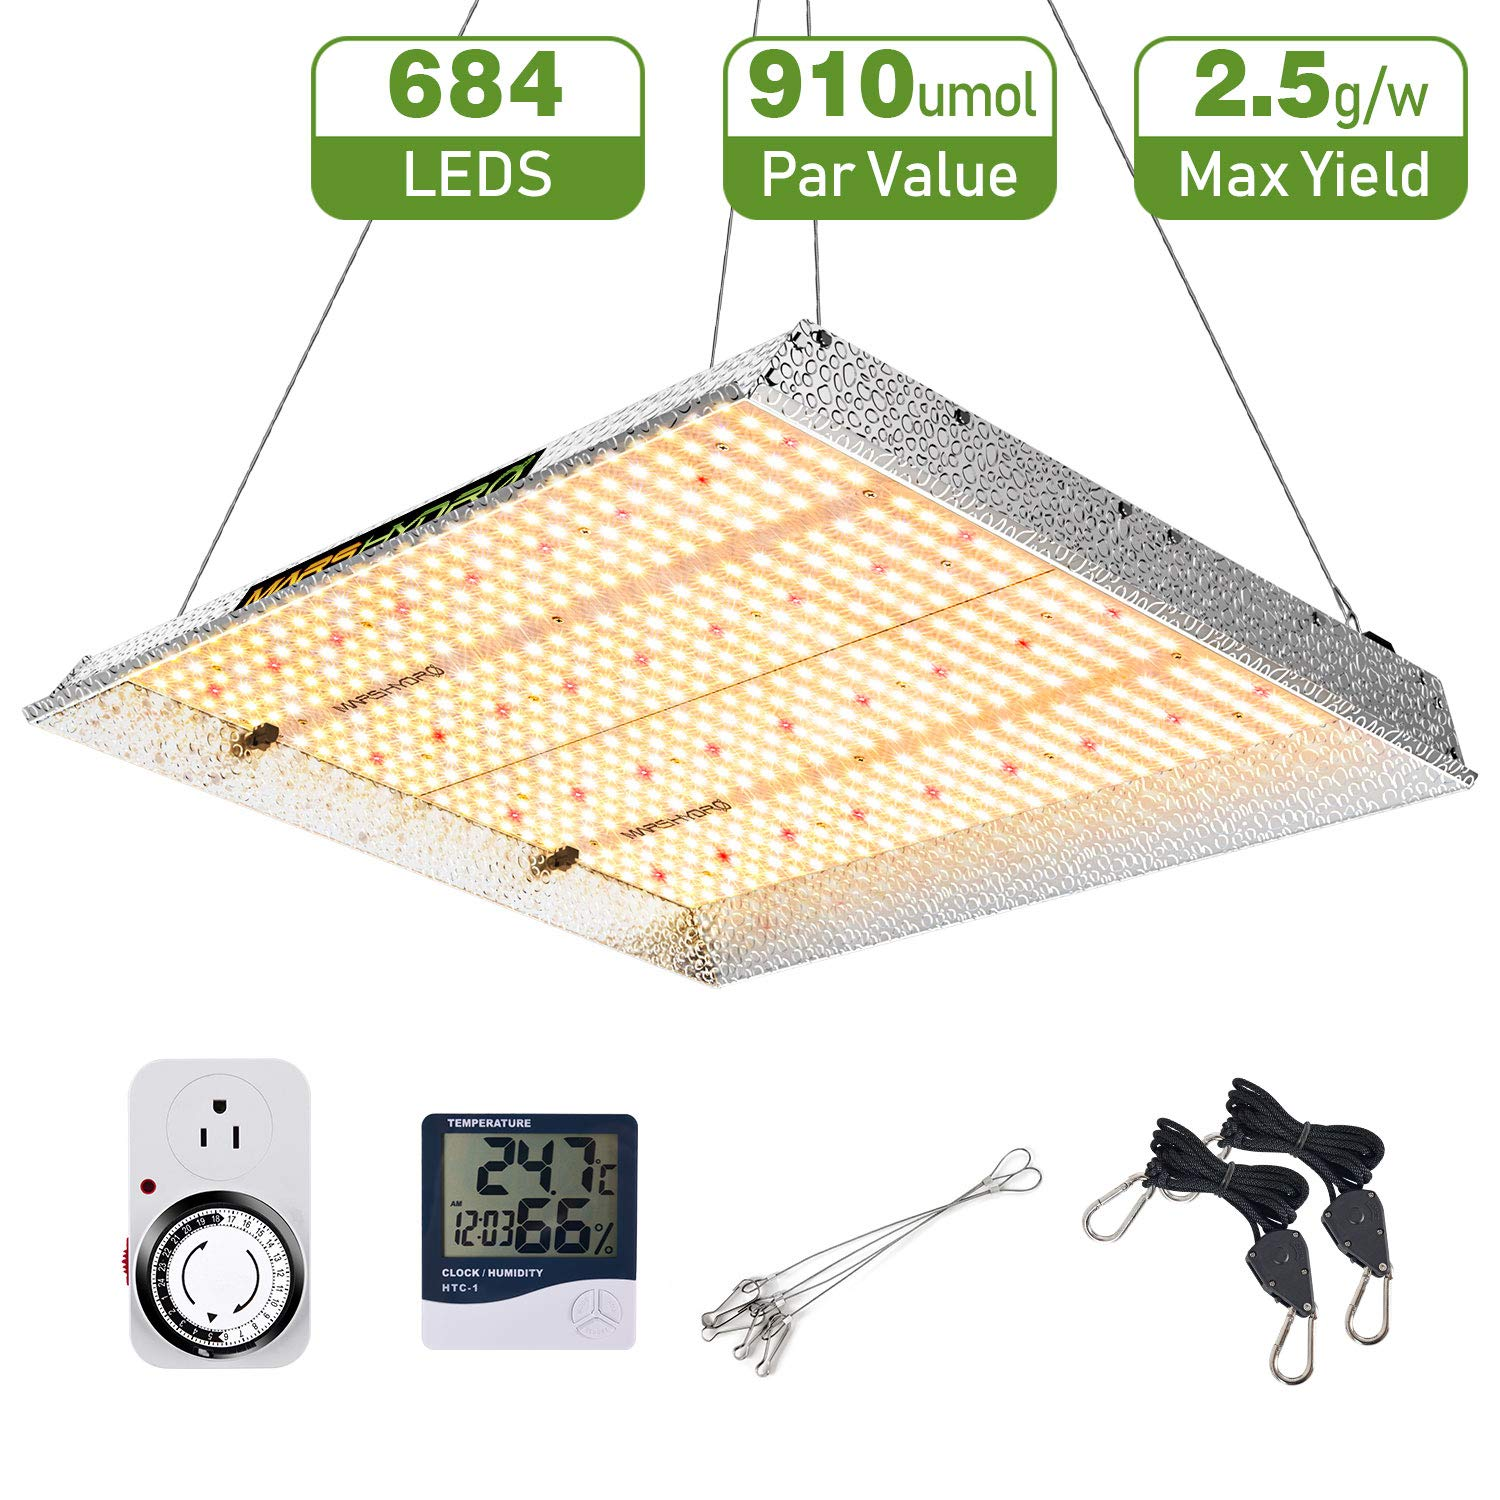 MARS HYDRO TSW 2000W Led Grow Light Full Spectrum for Indoor Plants Veg Bloom with Updated LED White Growing Lamps by MARS HYDRO